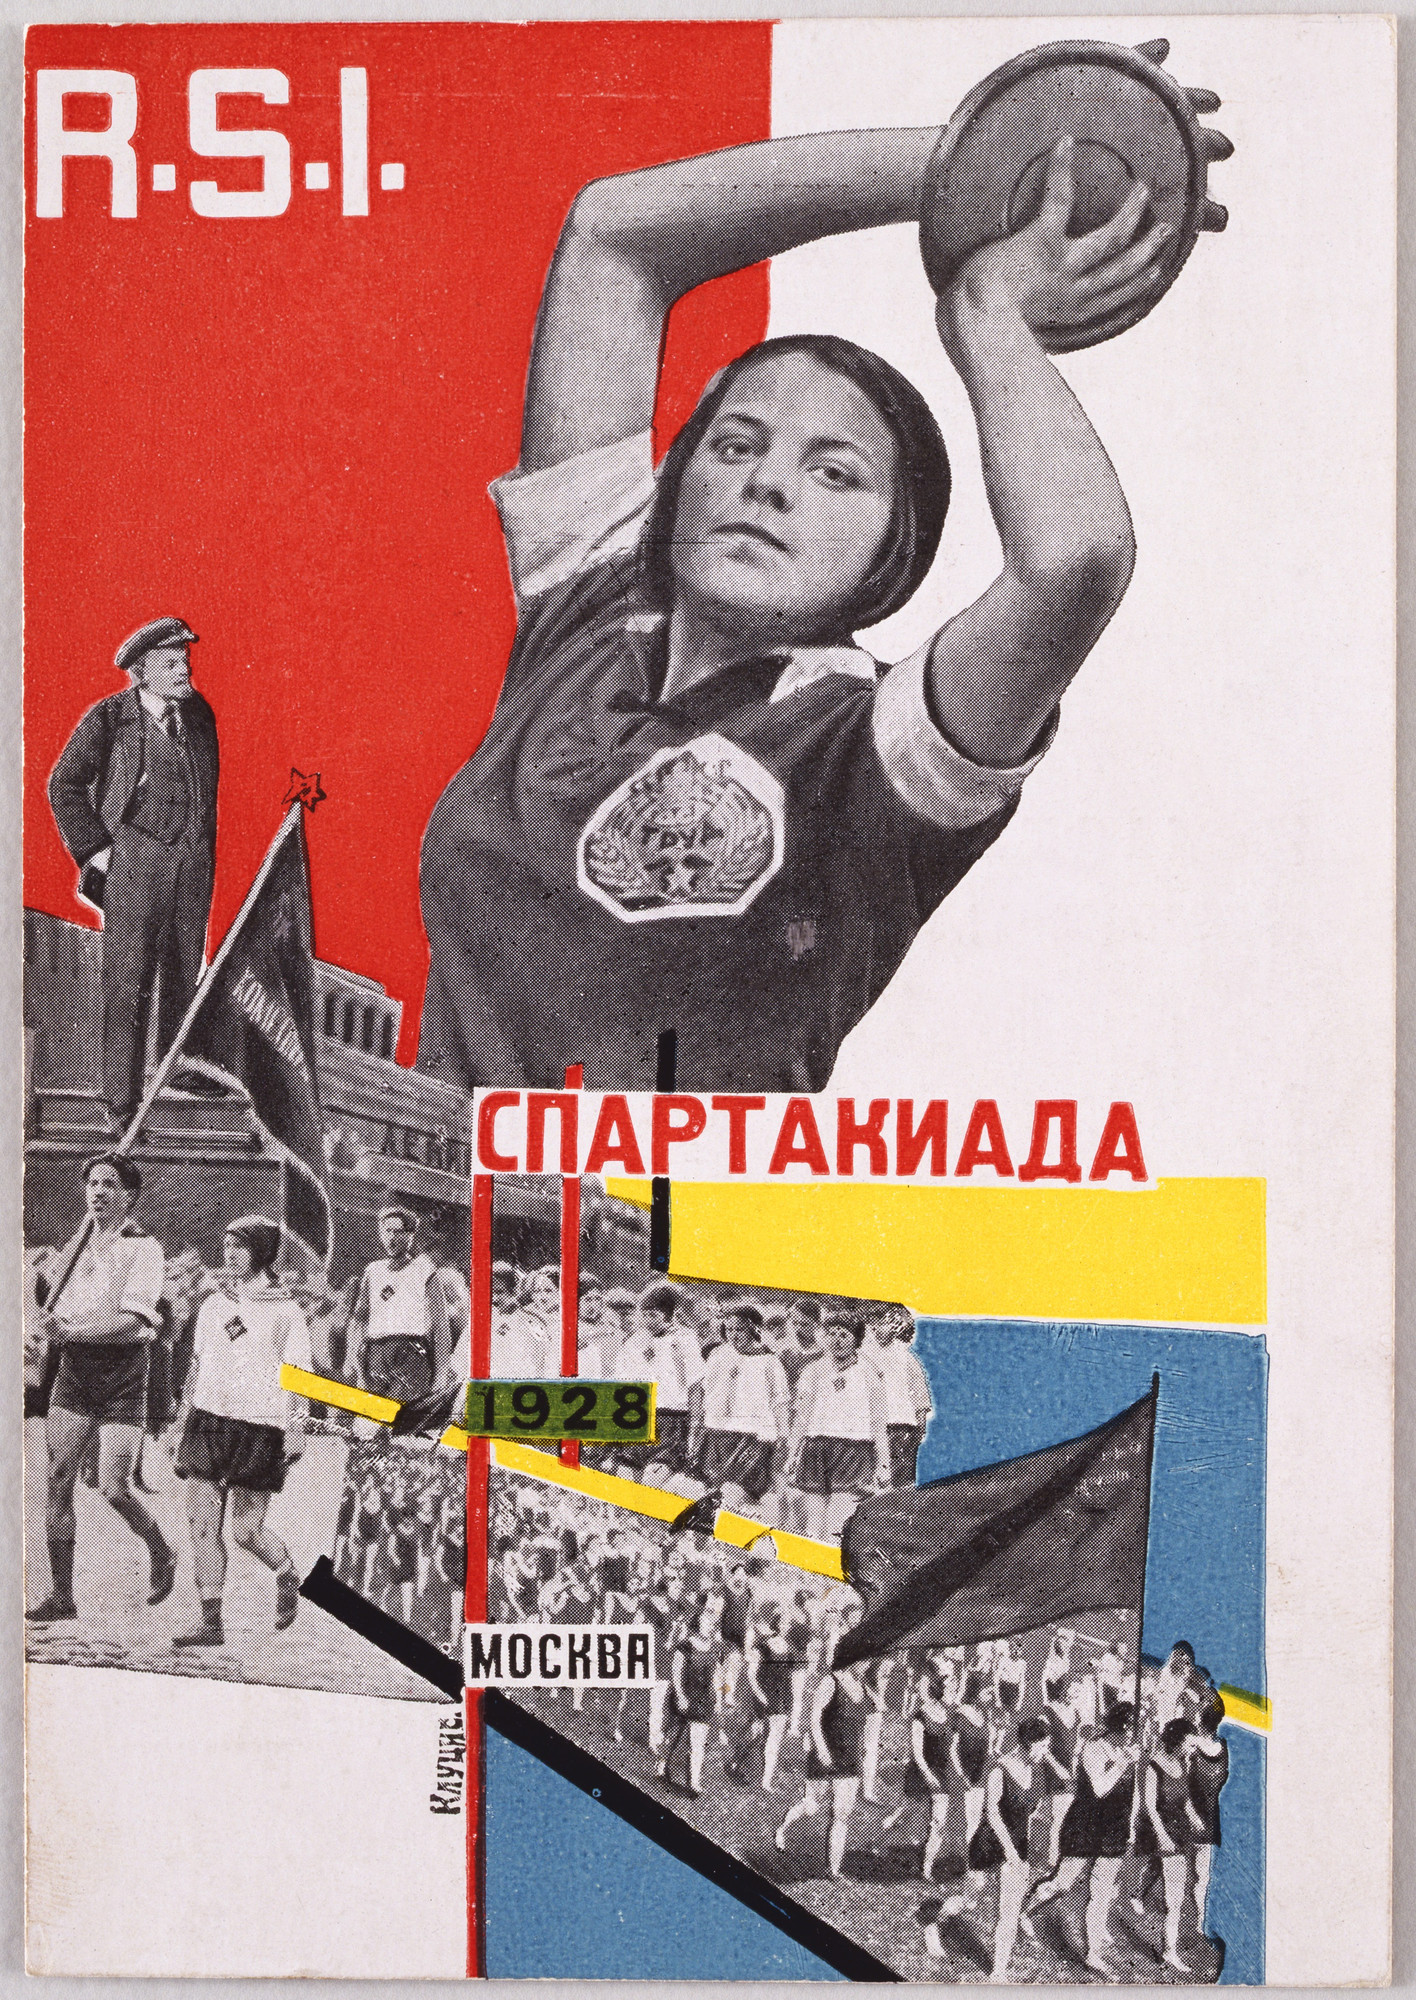 Gustav Klutsis. Postcard for the All Union Spartakiada Sporting Event, Spartakiada Moskva. 1928